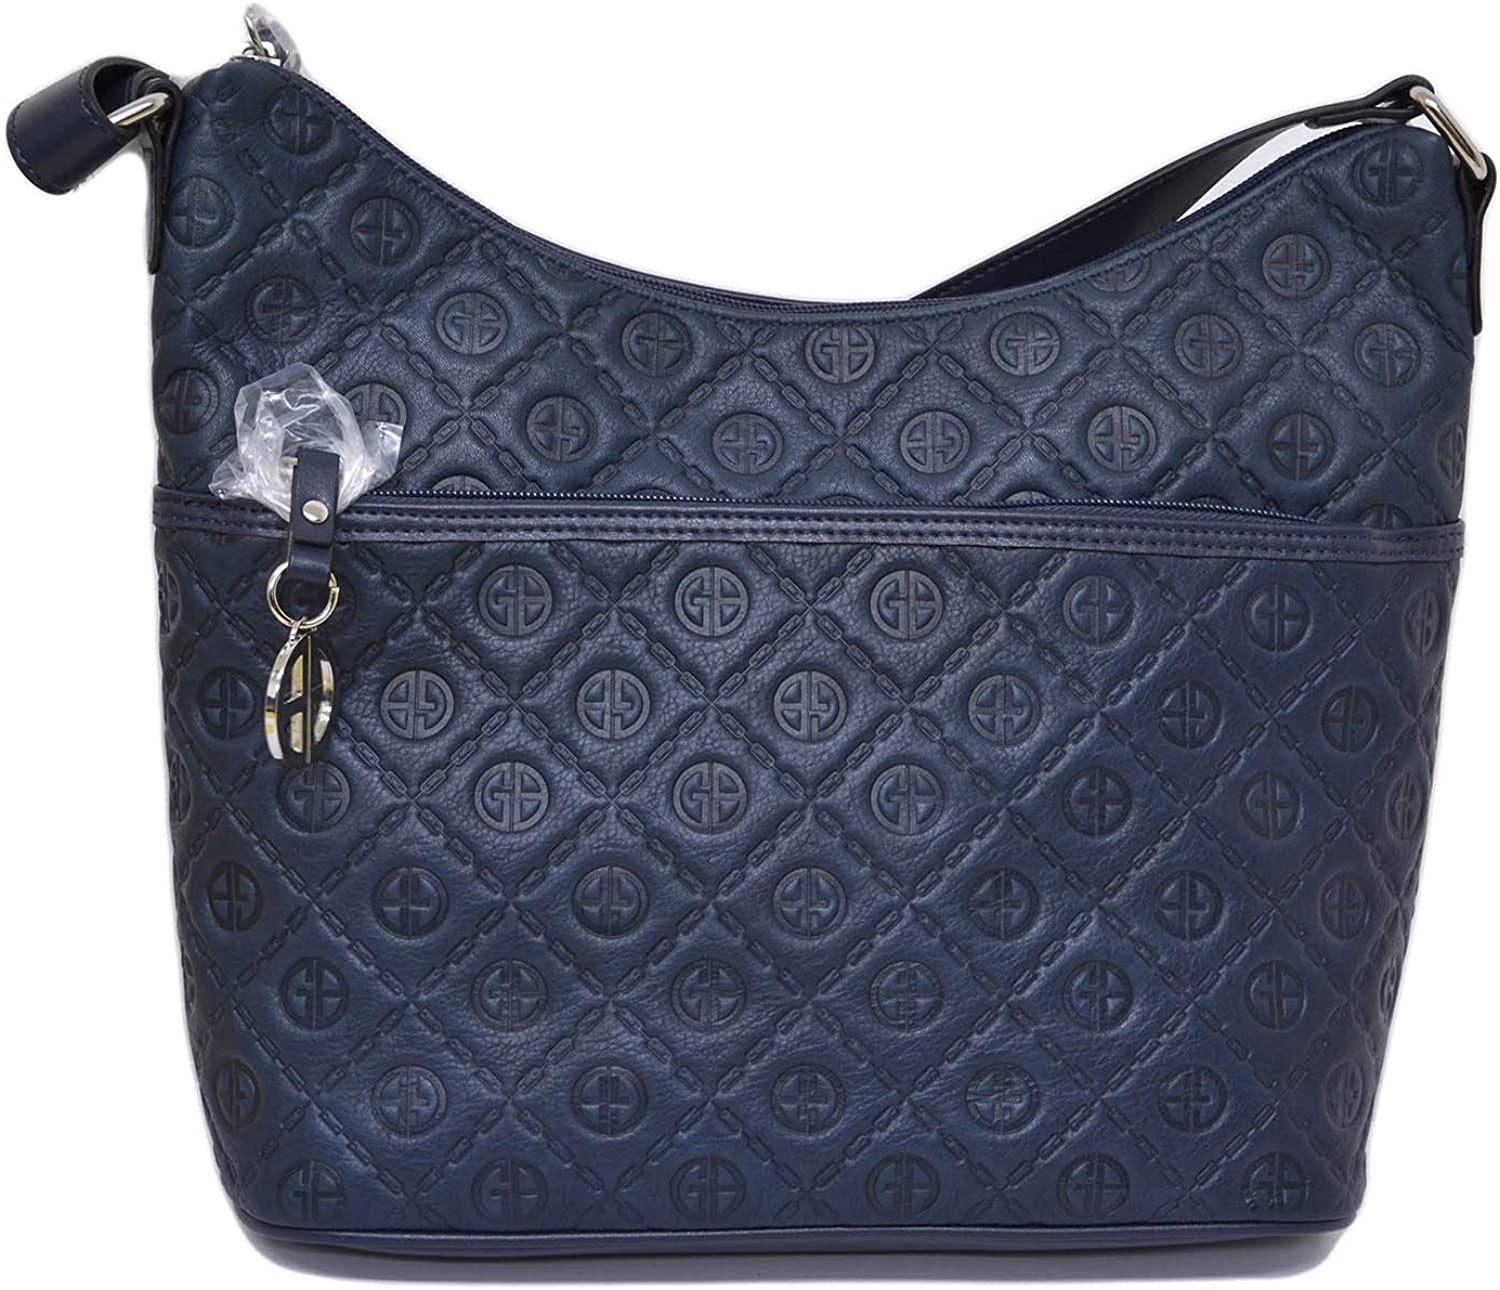 Giani Bernini Womens Embossed Logo Hobo Handbag Navy